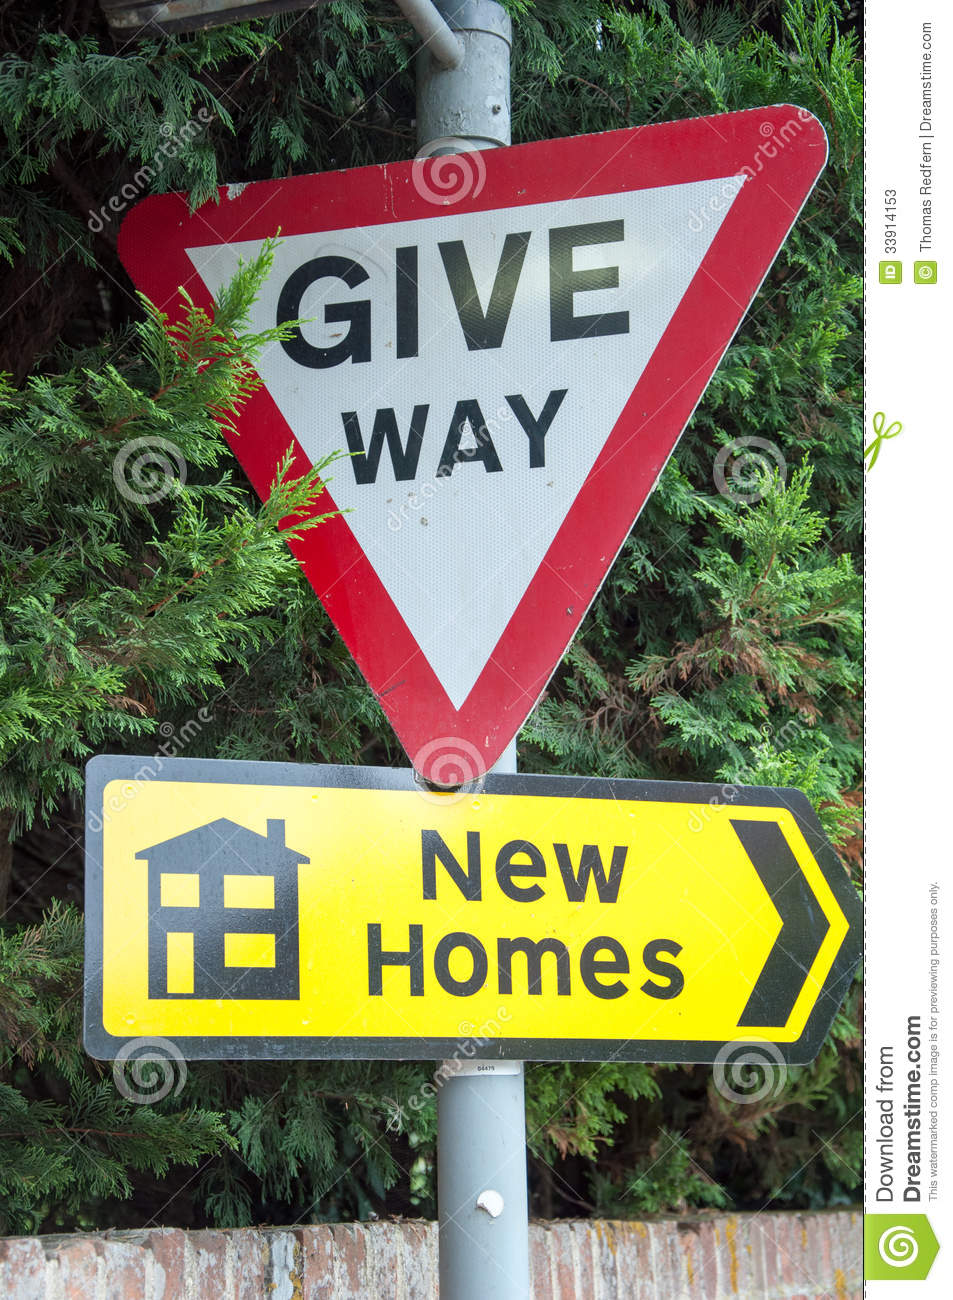 Home Time Road Roblox Id: Give Way, New Homes Stock Image. Image Of Homes, Post